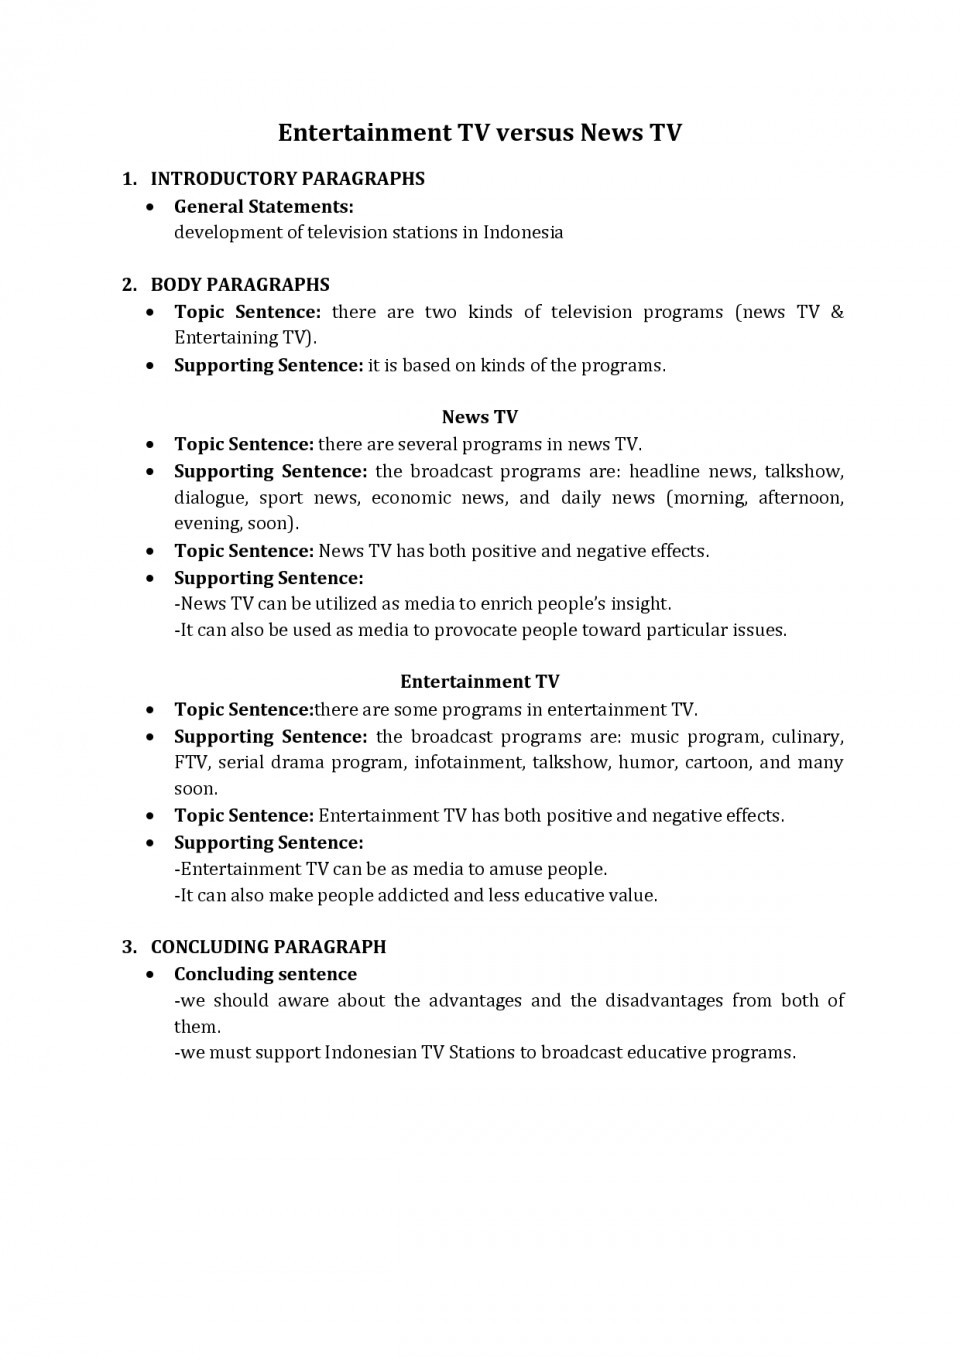 018 Fbunmxinib Outline To Essay Exceptional Format For Definition About Social Media Argumentative Middle School 960